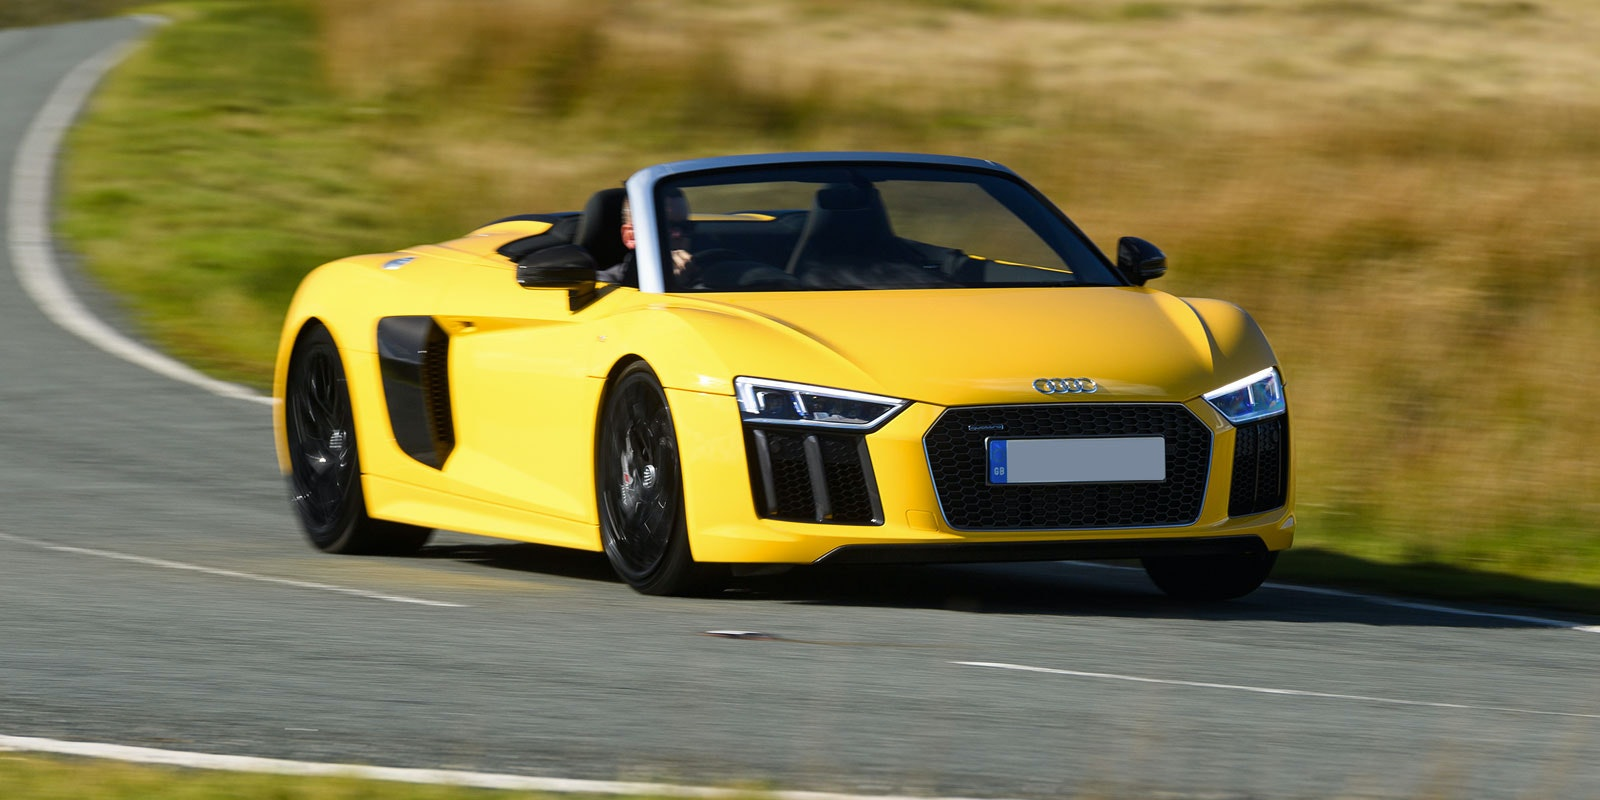 Yellow audi r8 spyder front driving best convertibles lead 1.jpg?ixlib=rb 1.1